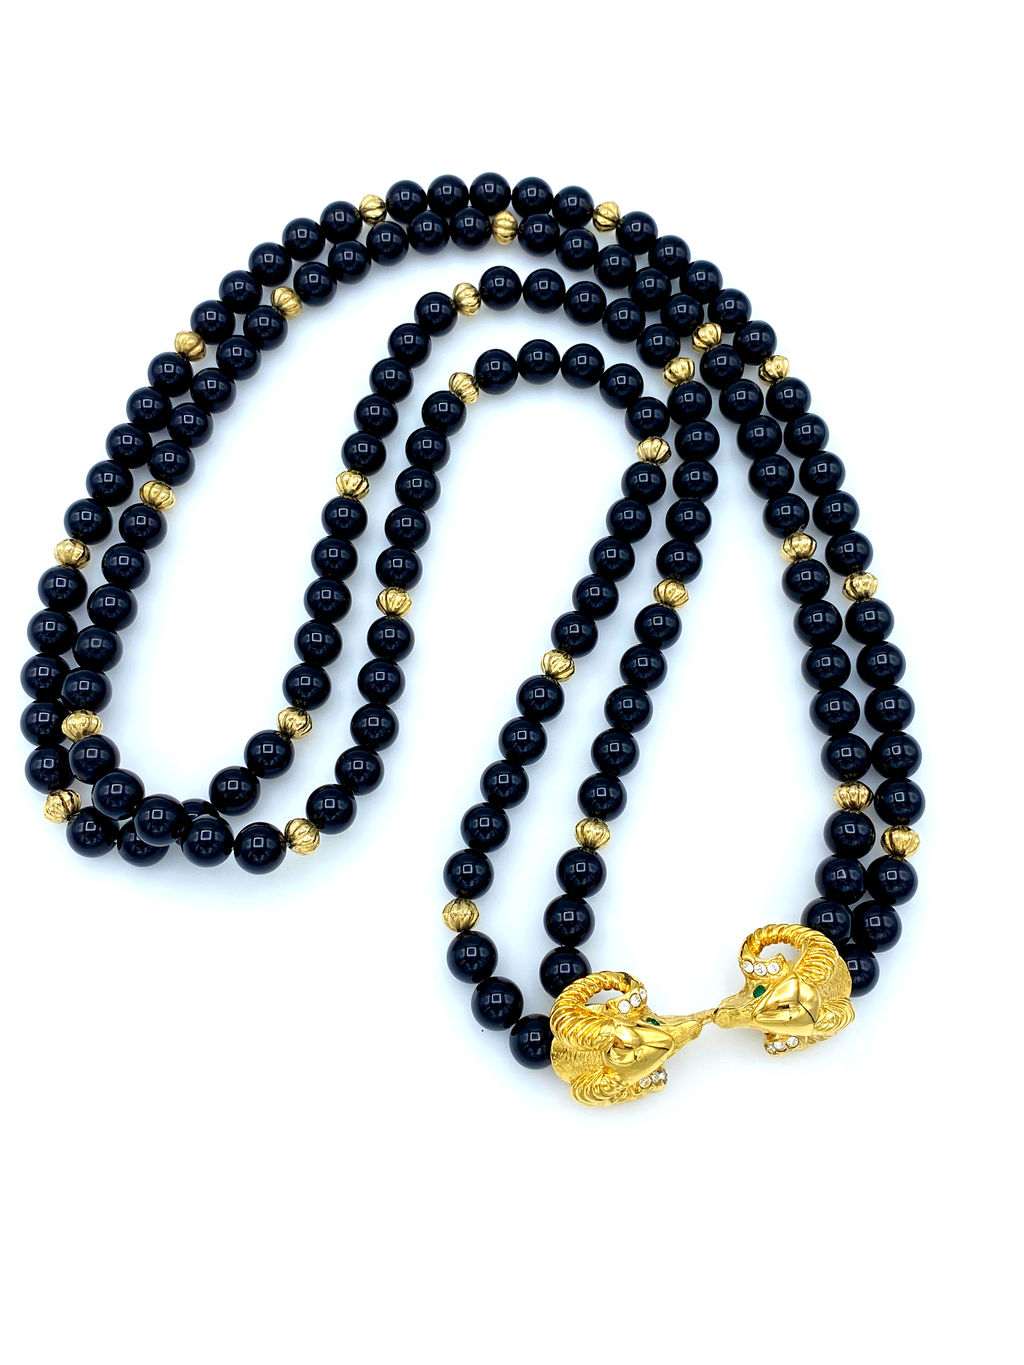 Kenneth Jay Lane Black Bead Two Strand Ram Head Pendant-Sustainable Fashion with Vintage Style-Trending Designer Fashion-24 Wishes